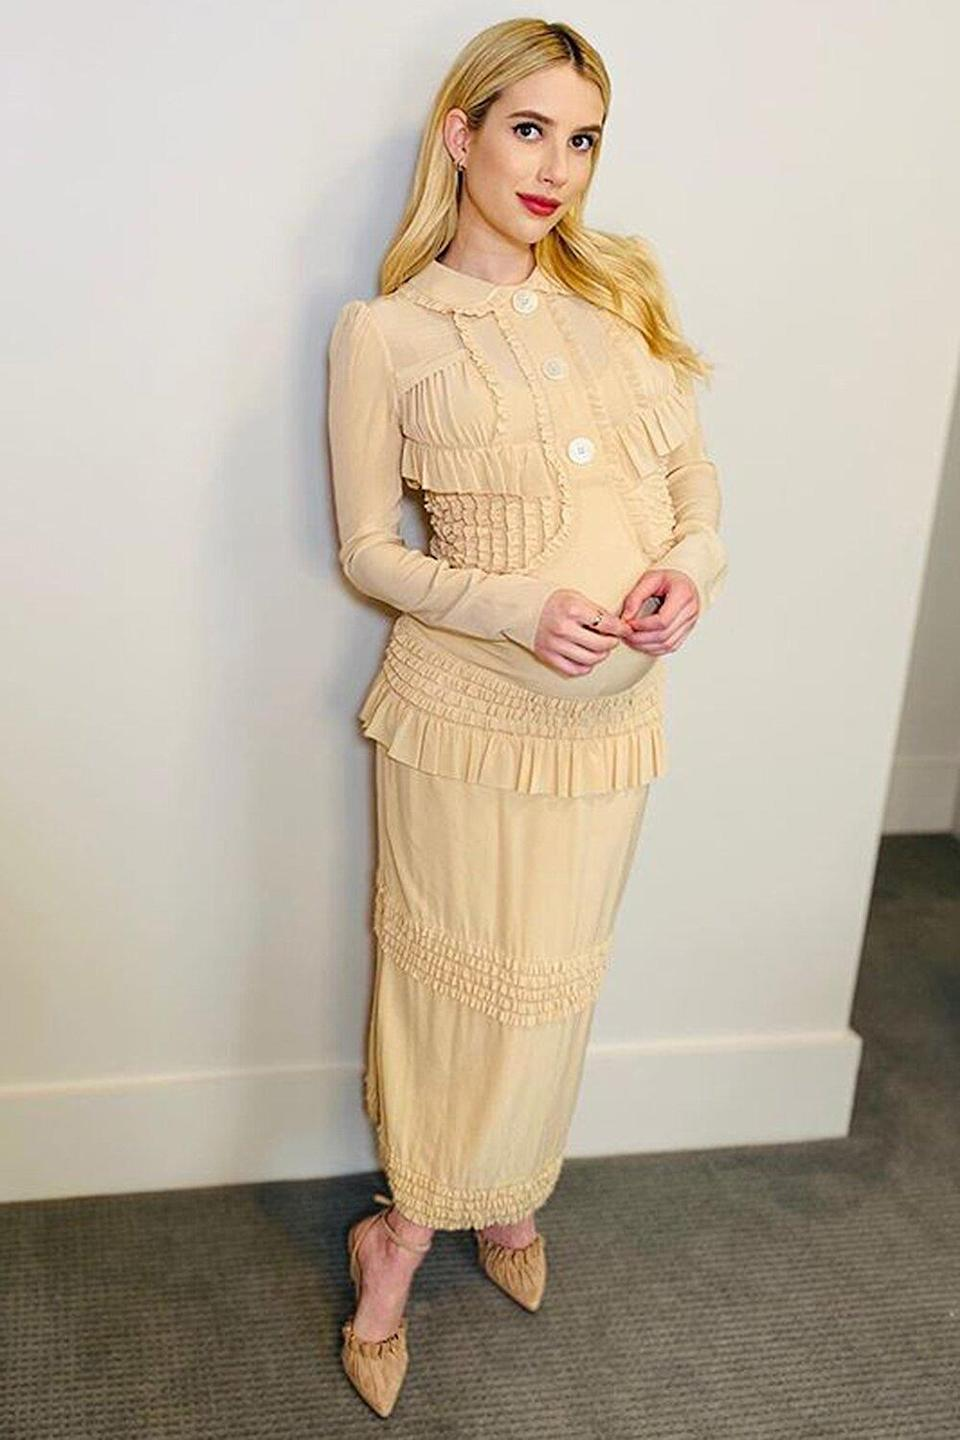 Pregnant Emma Roberts Reveals Why She's Happy to Be Expecting a Baby Boy: 'Thank Goodness'